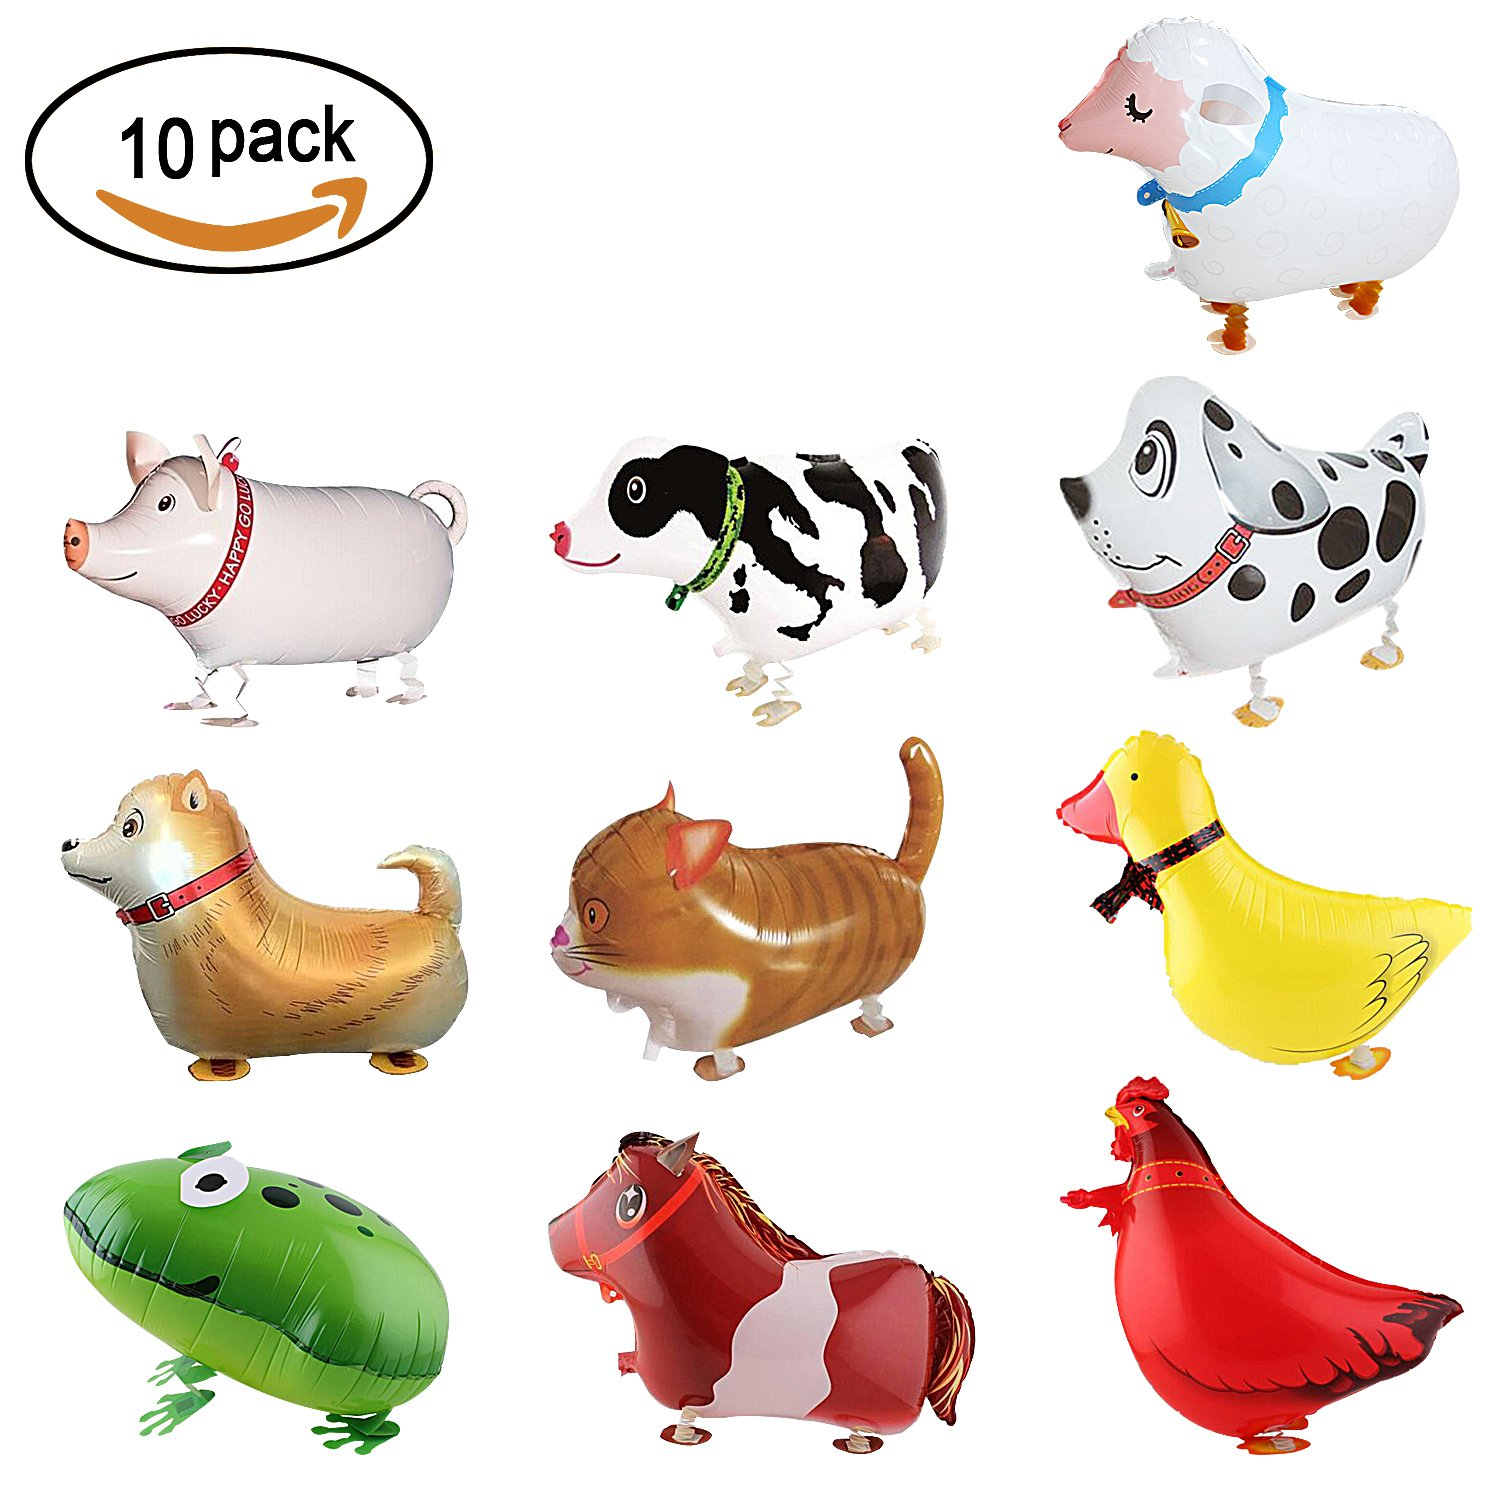 SOTOGO 10 Pieces Walking Animal Balloons Farm Animal Balloon Birthday Party BBQ Party Décor(Pony,Duck,Rooster,Cow,Pig,Sheep,Spotted Dog,Sheepdog,Frog,Cat)